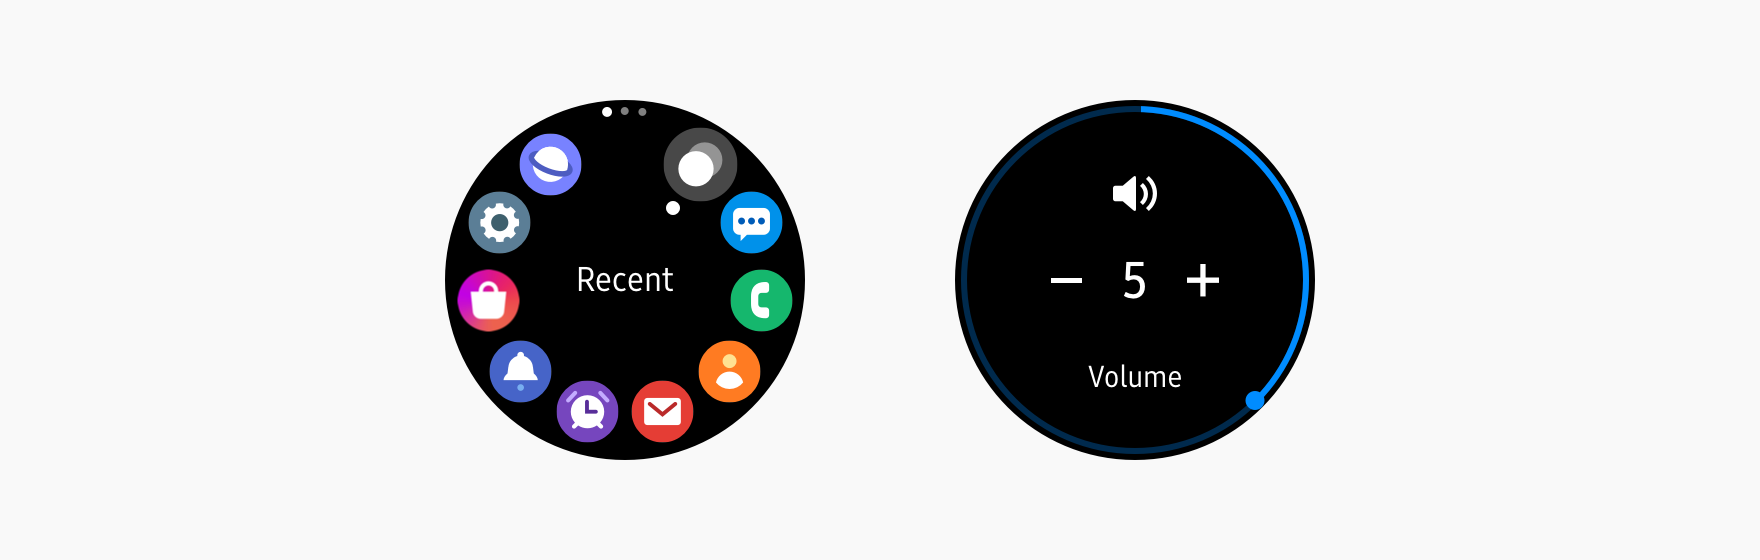 The interface design suggests how the user should utilize the bezel.